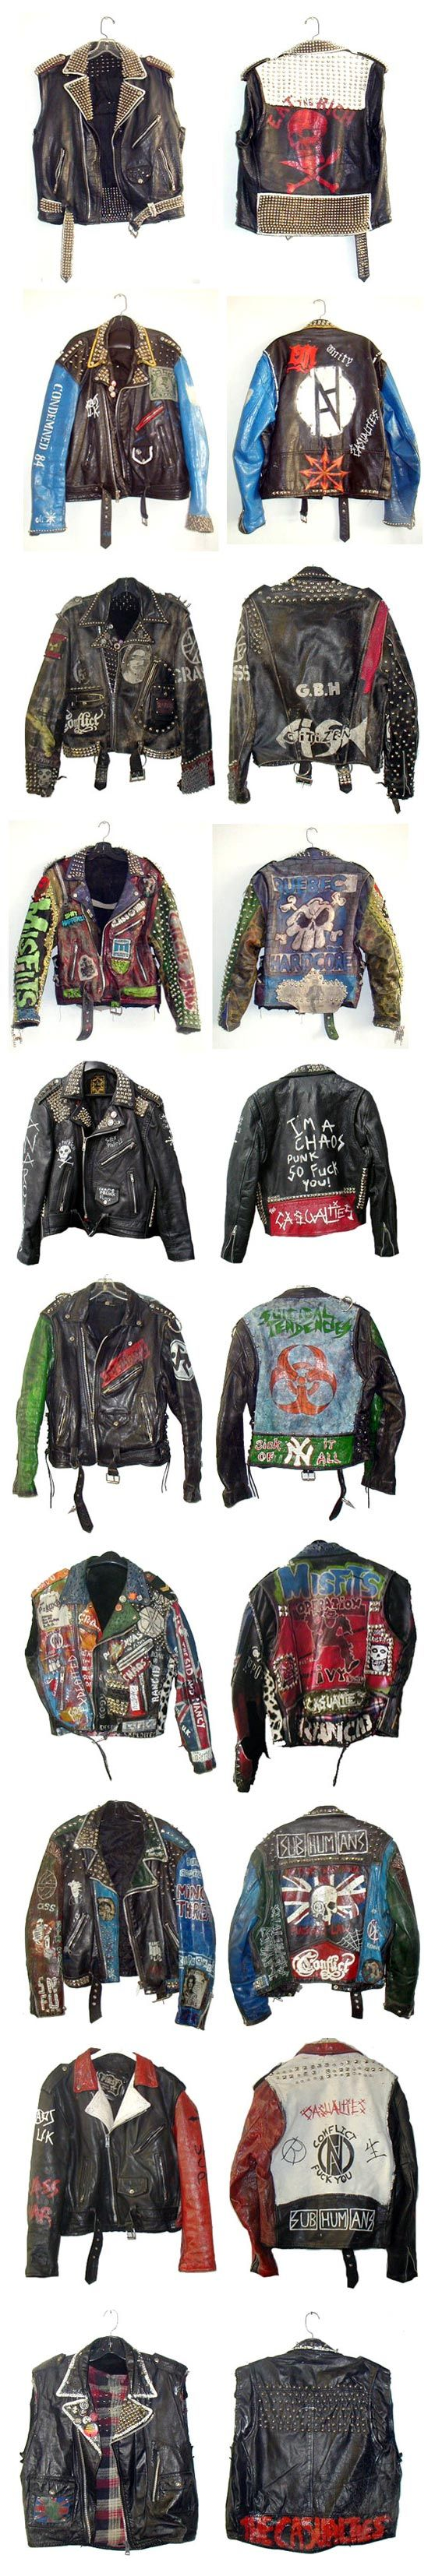 At Eagle Ages We Love Motorcycle Jackets!!!                                                                                                                                                                                 More